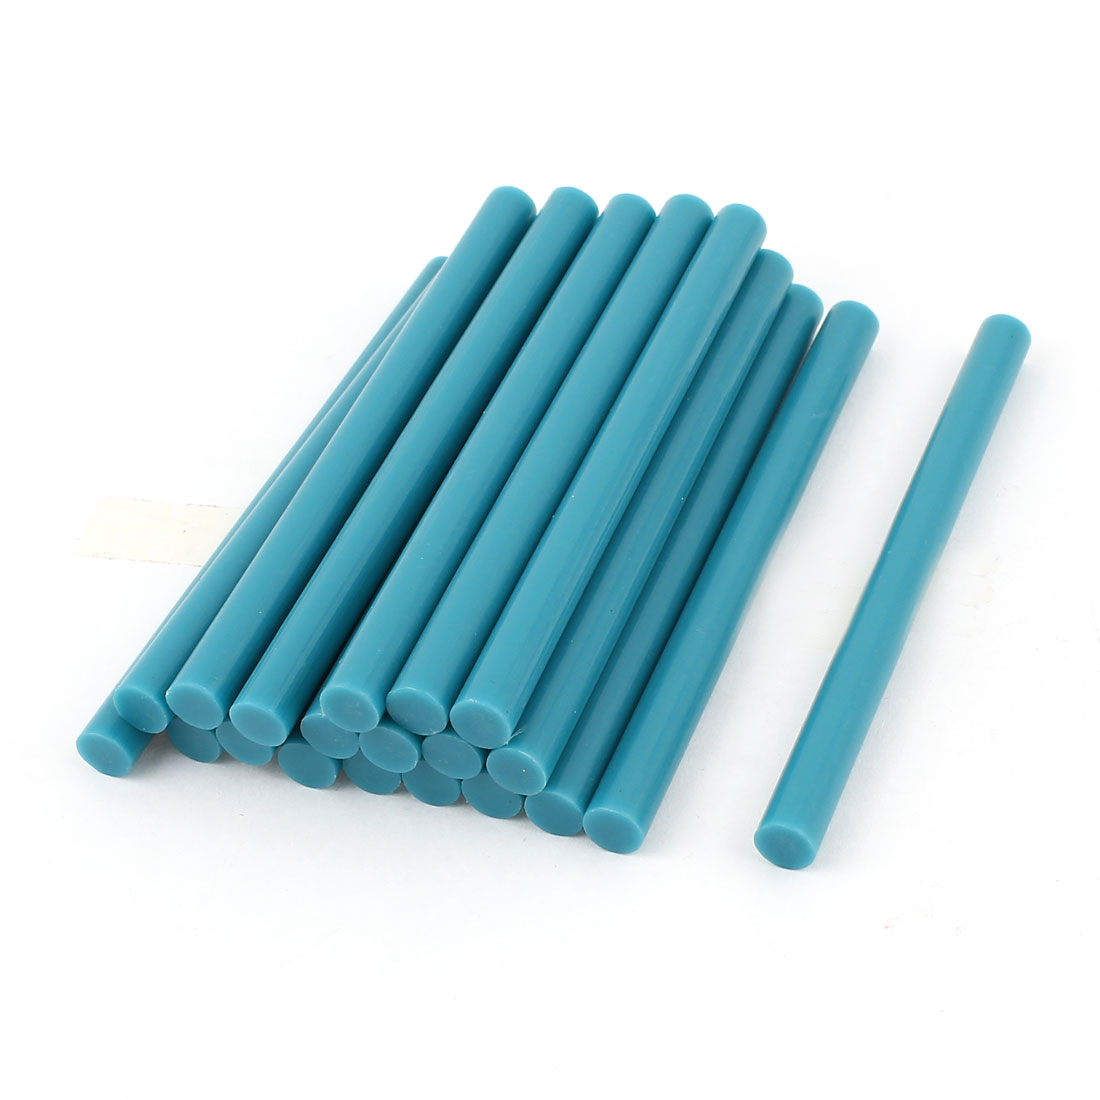 20 Pcs Teal Blue Hot Melt Glue Gun Adhesive Sticks 7mm x 100mm